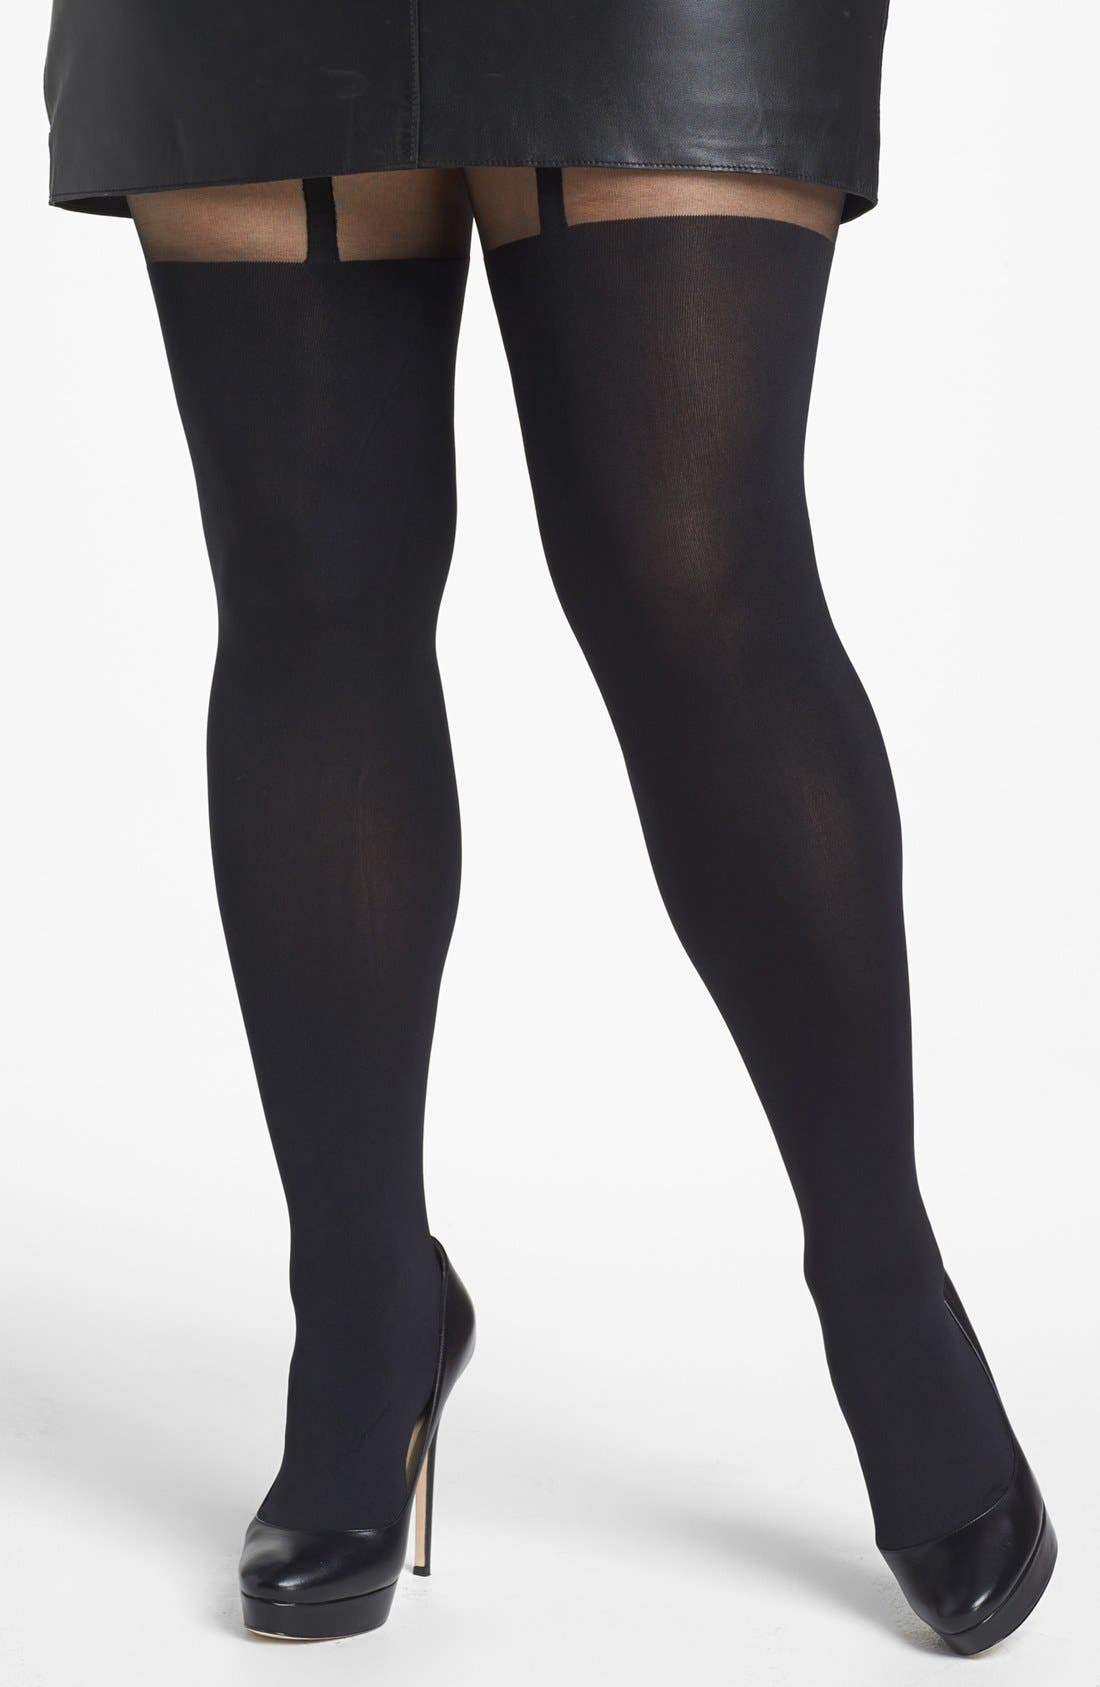 Alternate Image 1 Selected - Pretty Polly 'Curves - Suspender' Tights (Plus Size)